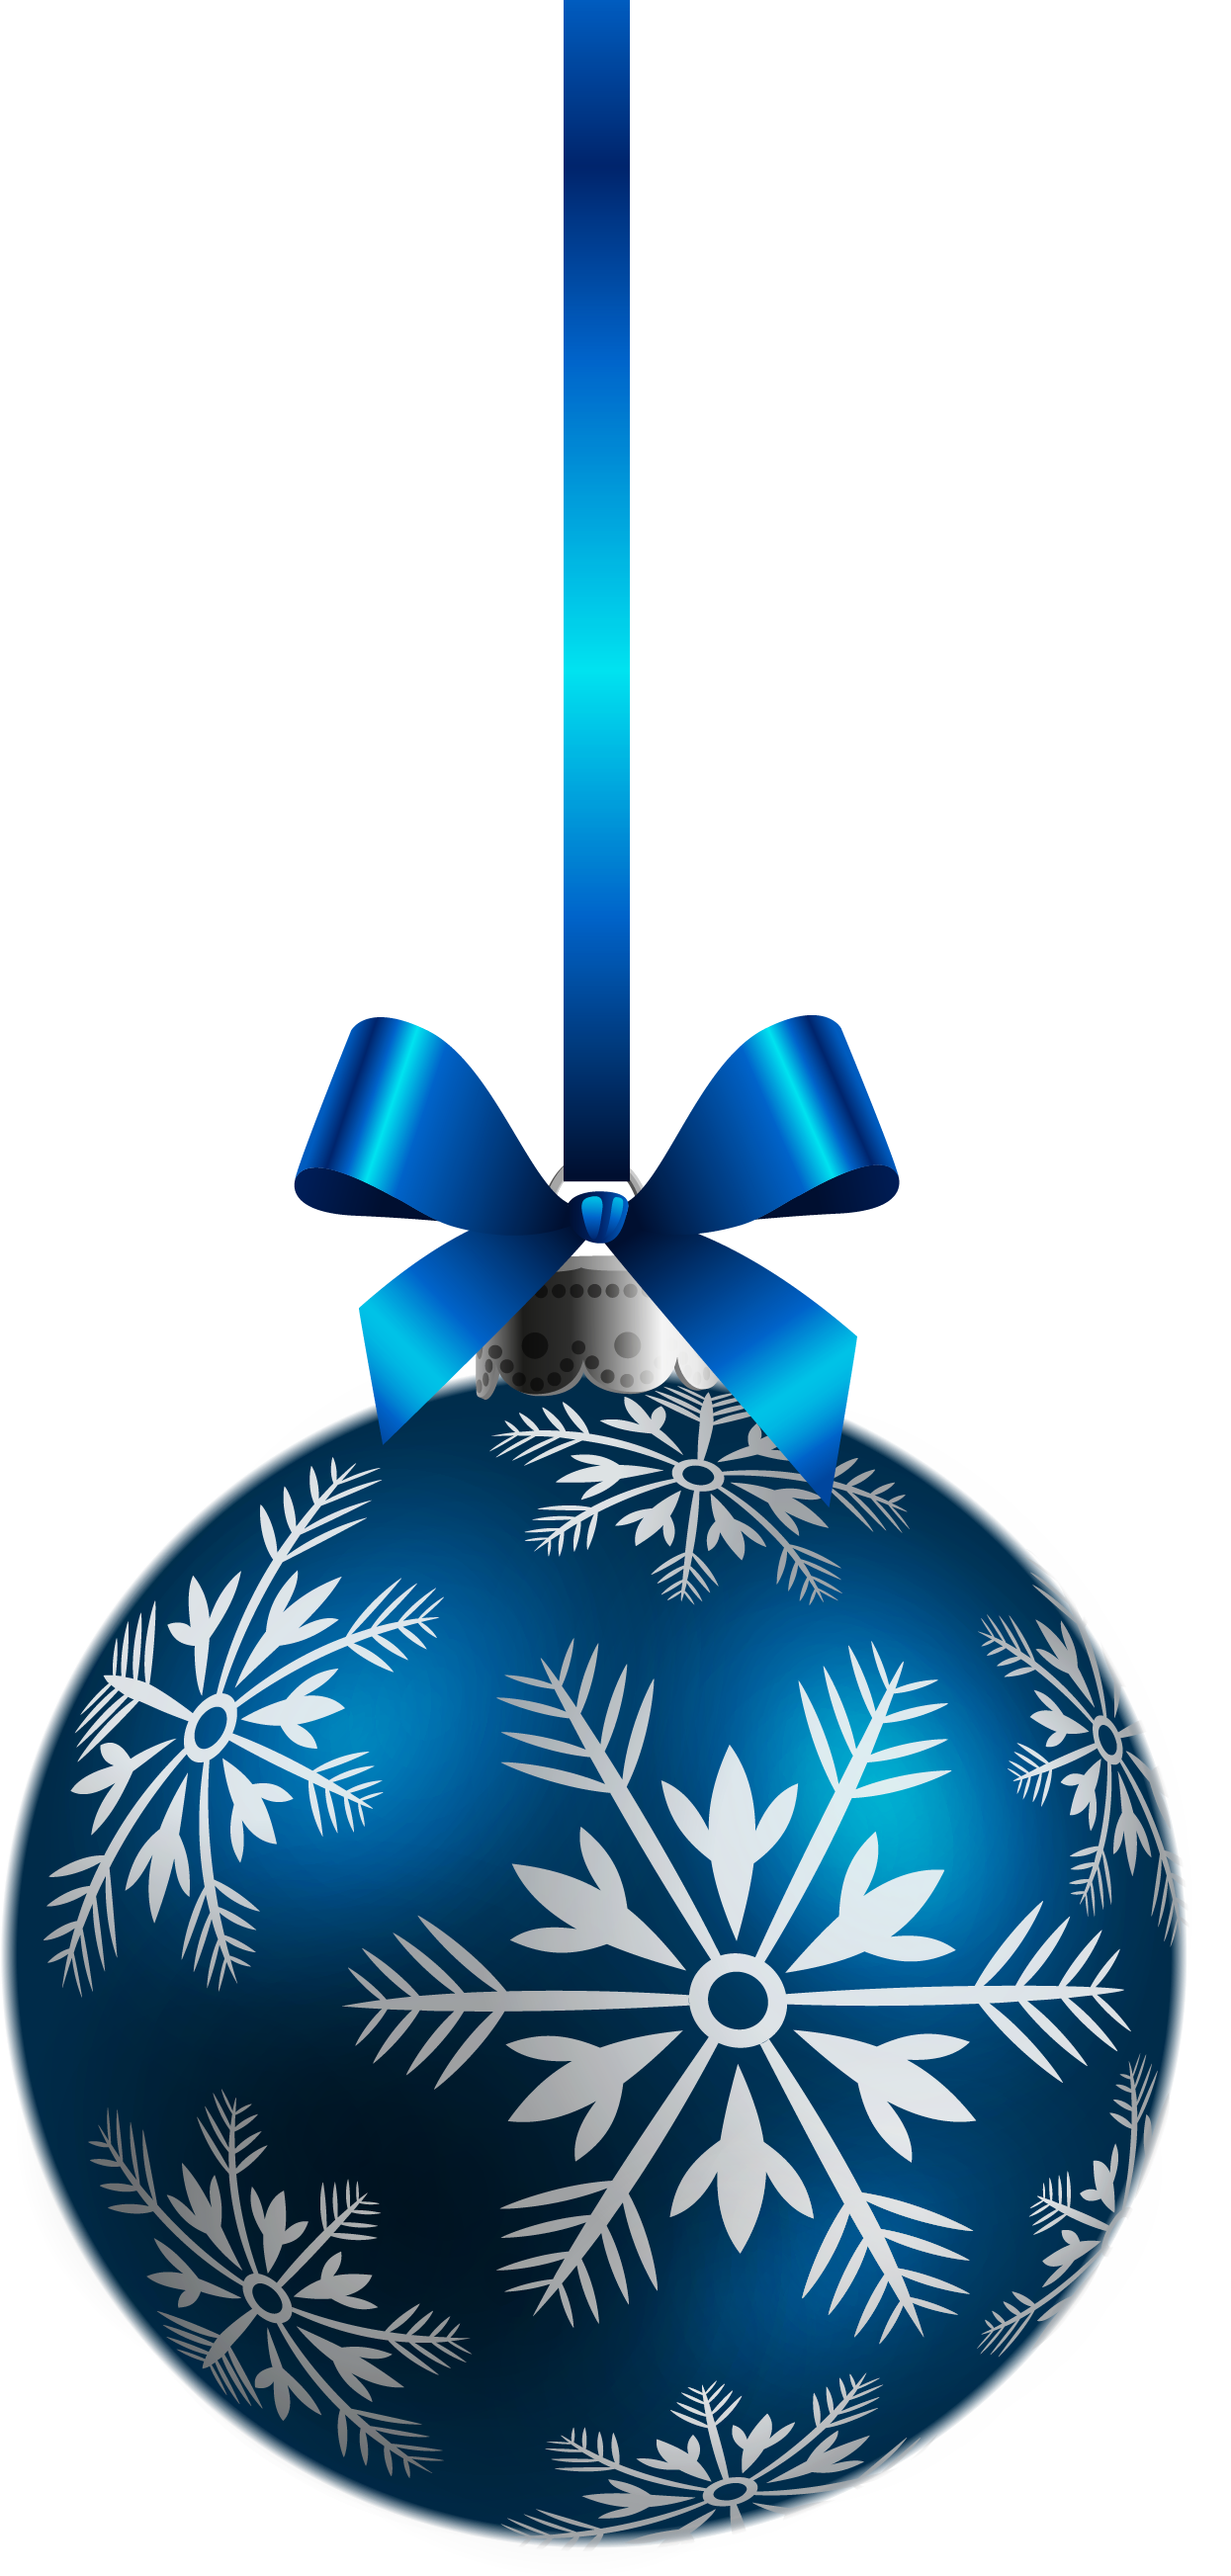 1245x2606 Christmas Ornament Clip Art Silver Christmas Ornaments Png Ball